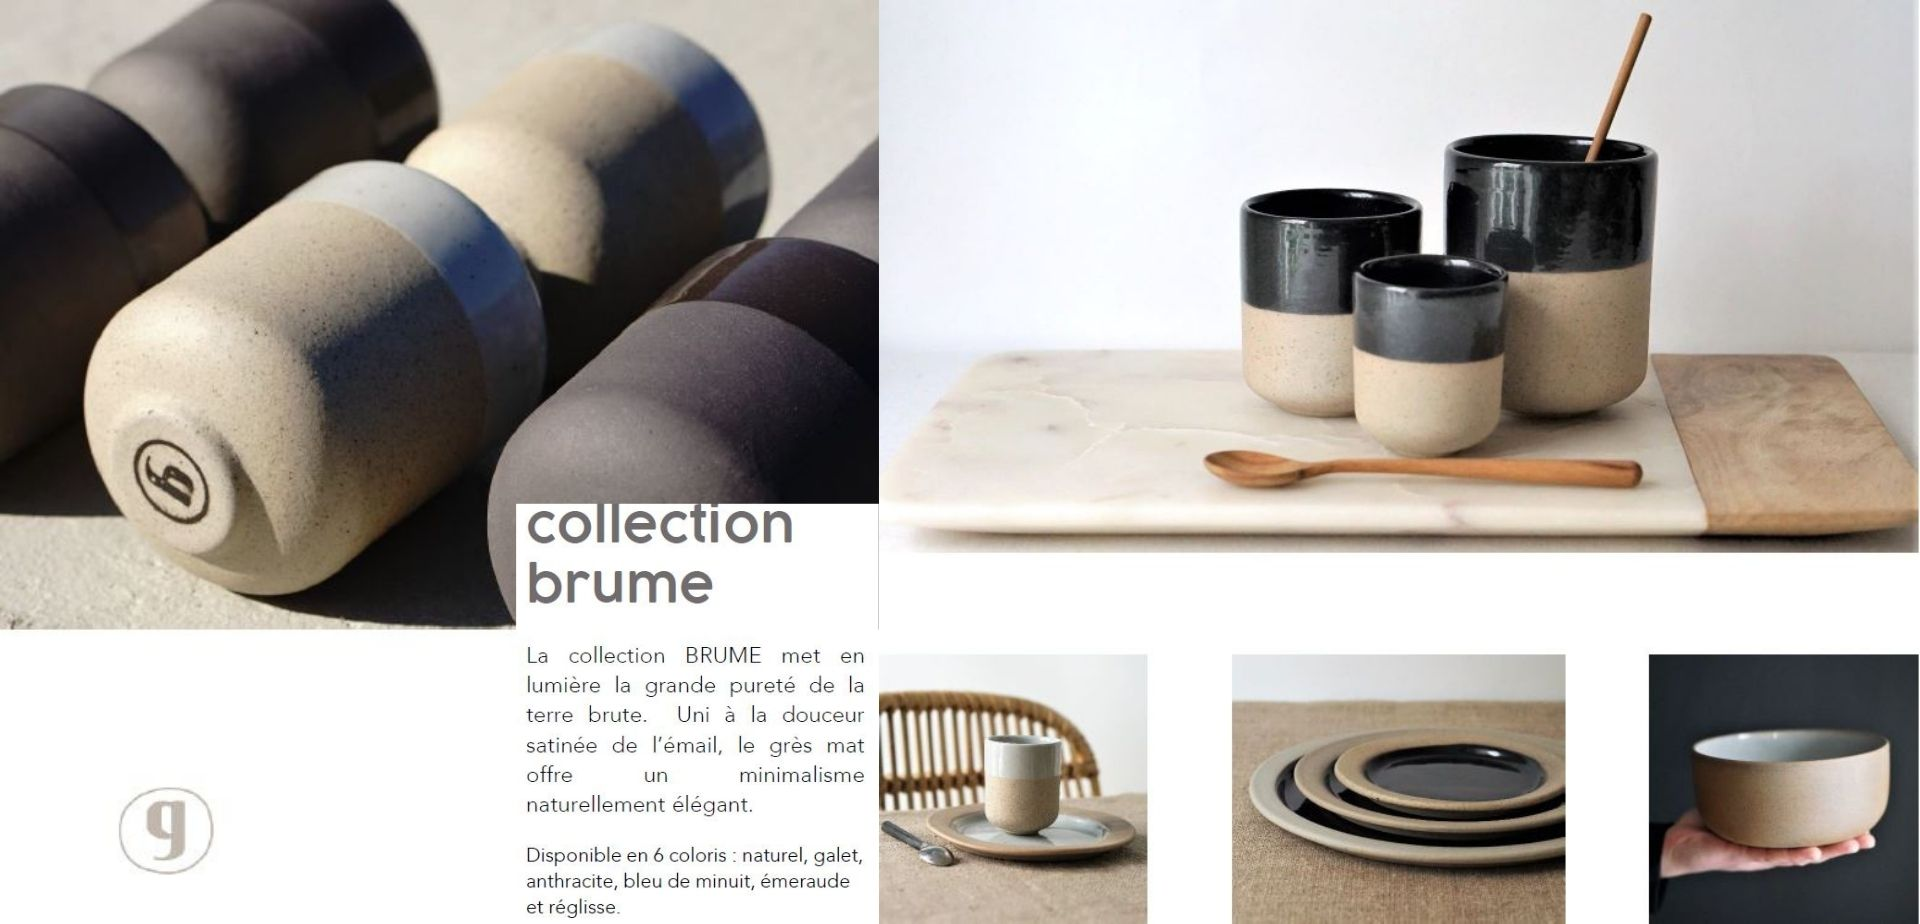 Goberlote collection brume